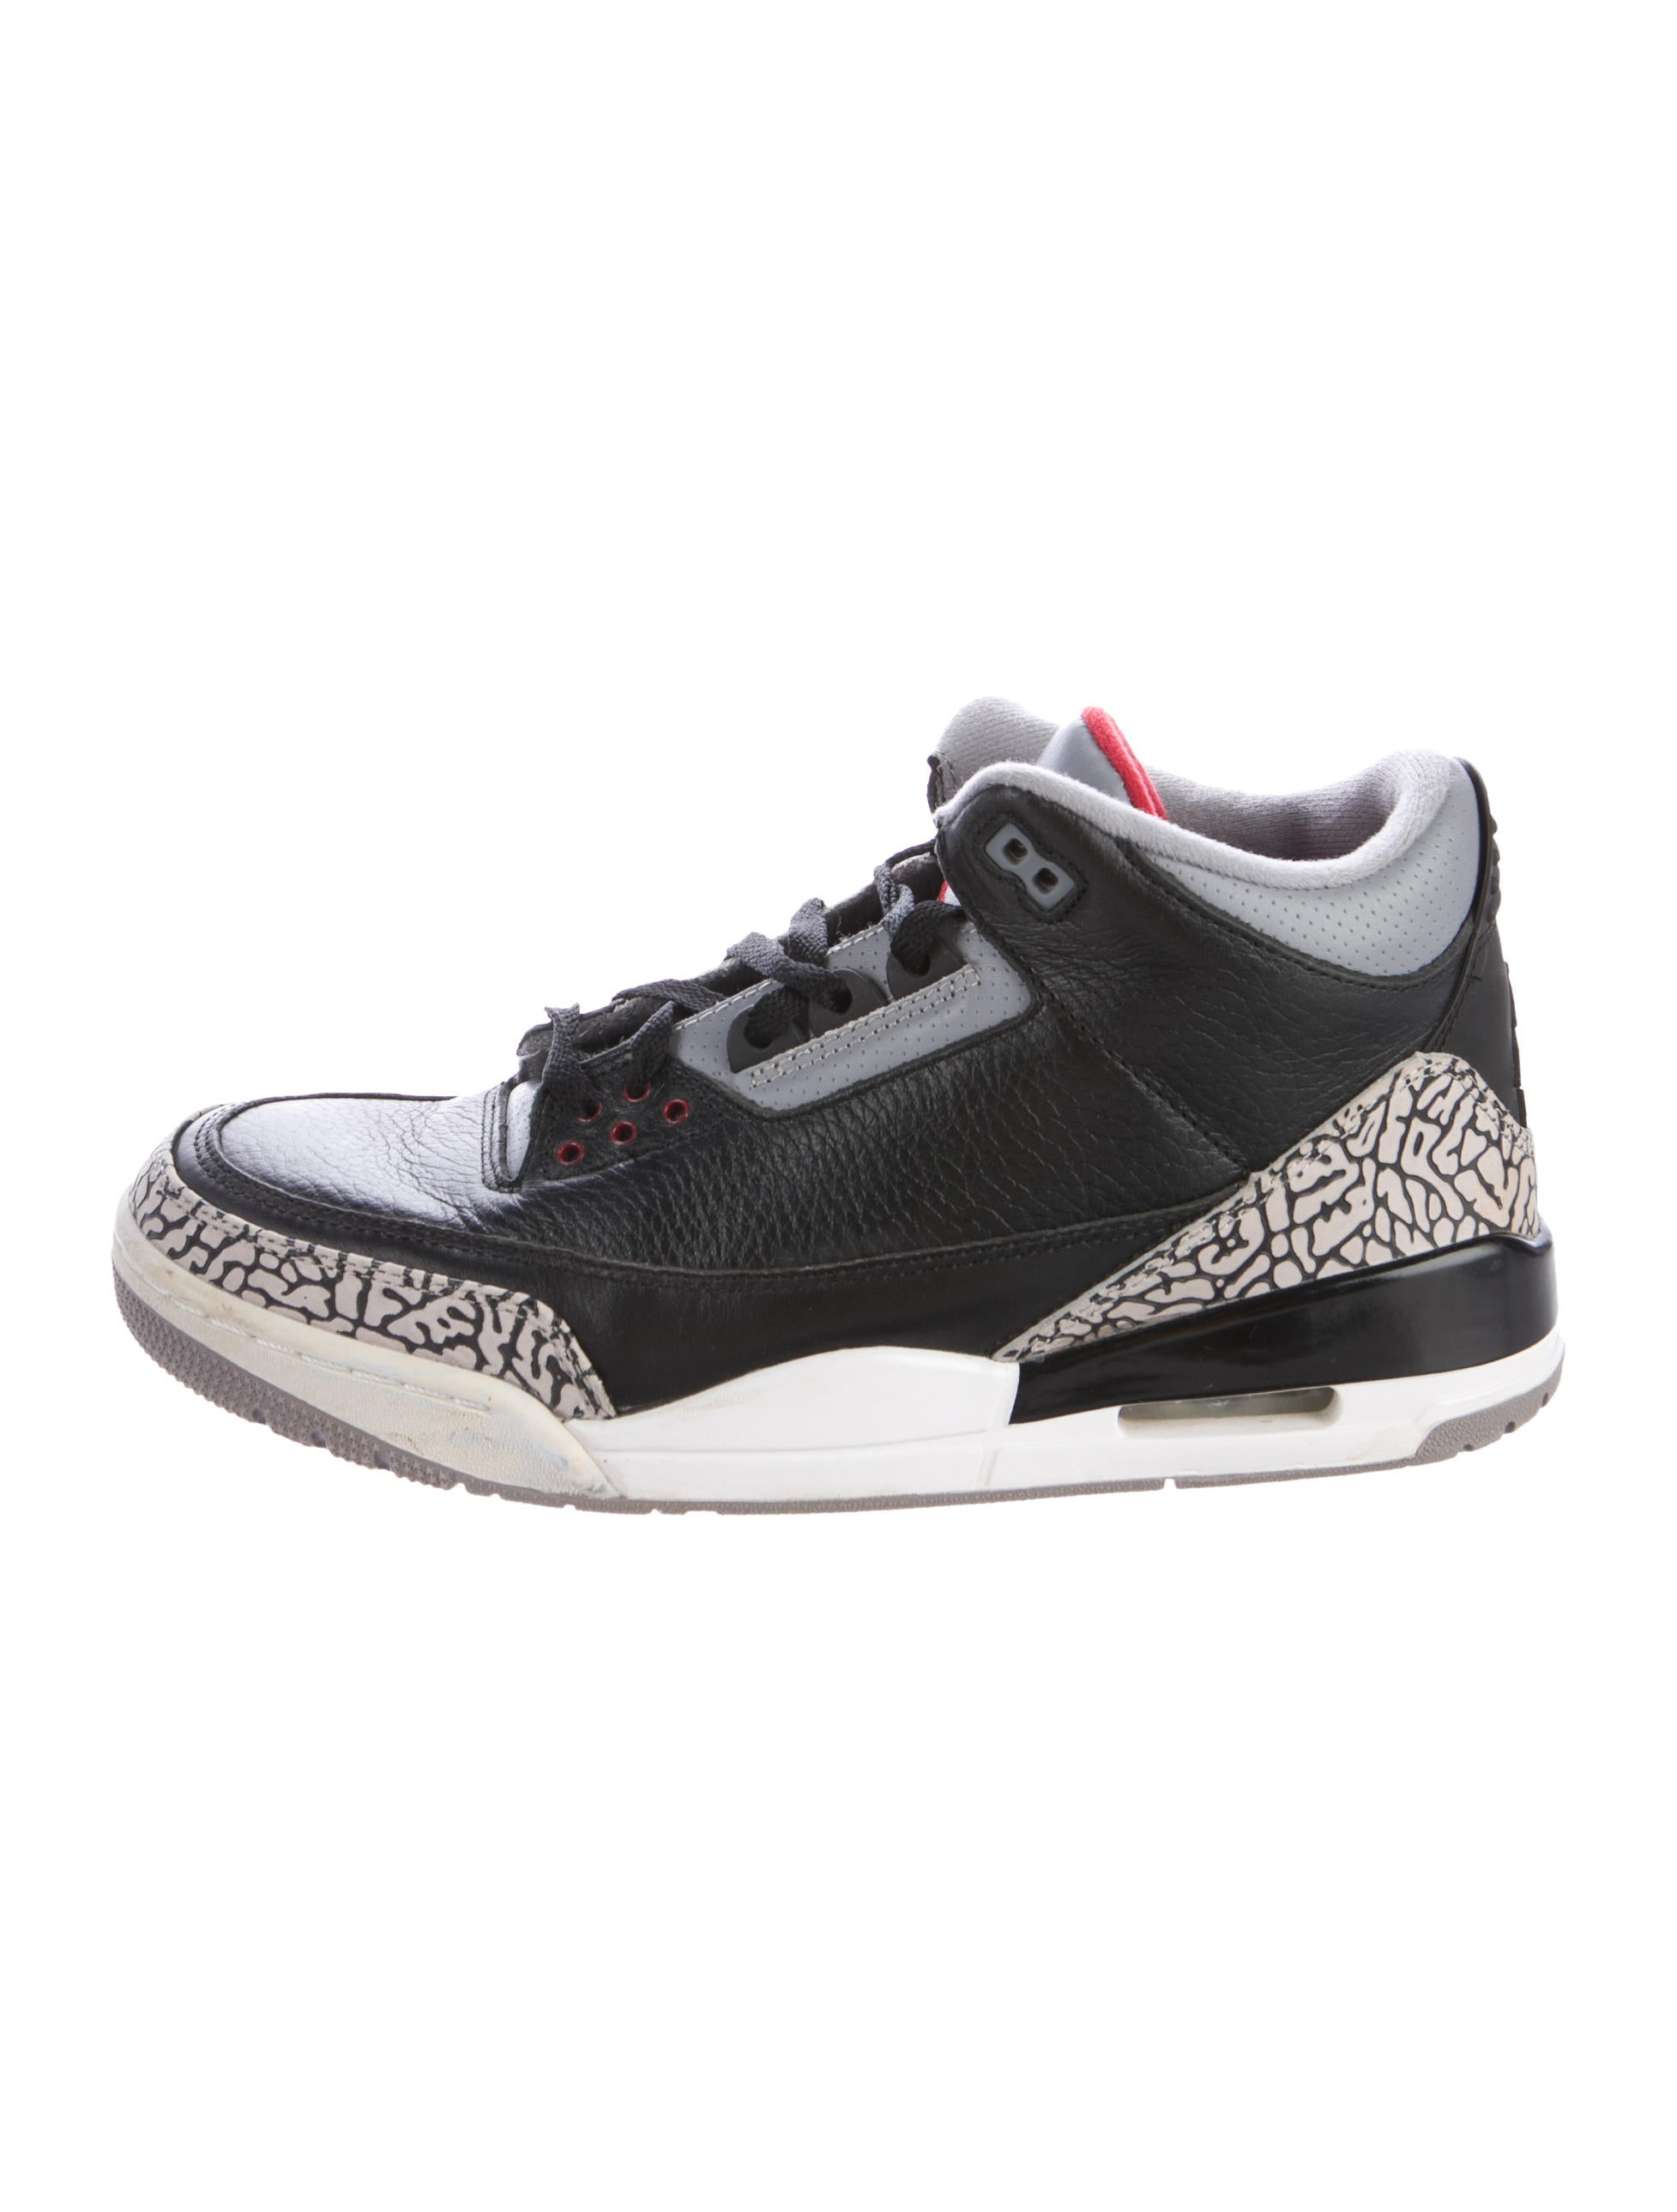 Nike 3 Retro 2011 Release Sneakers Shoes Wu221555